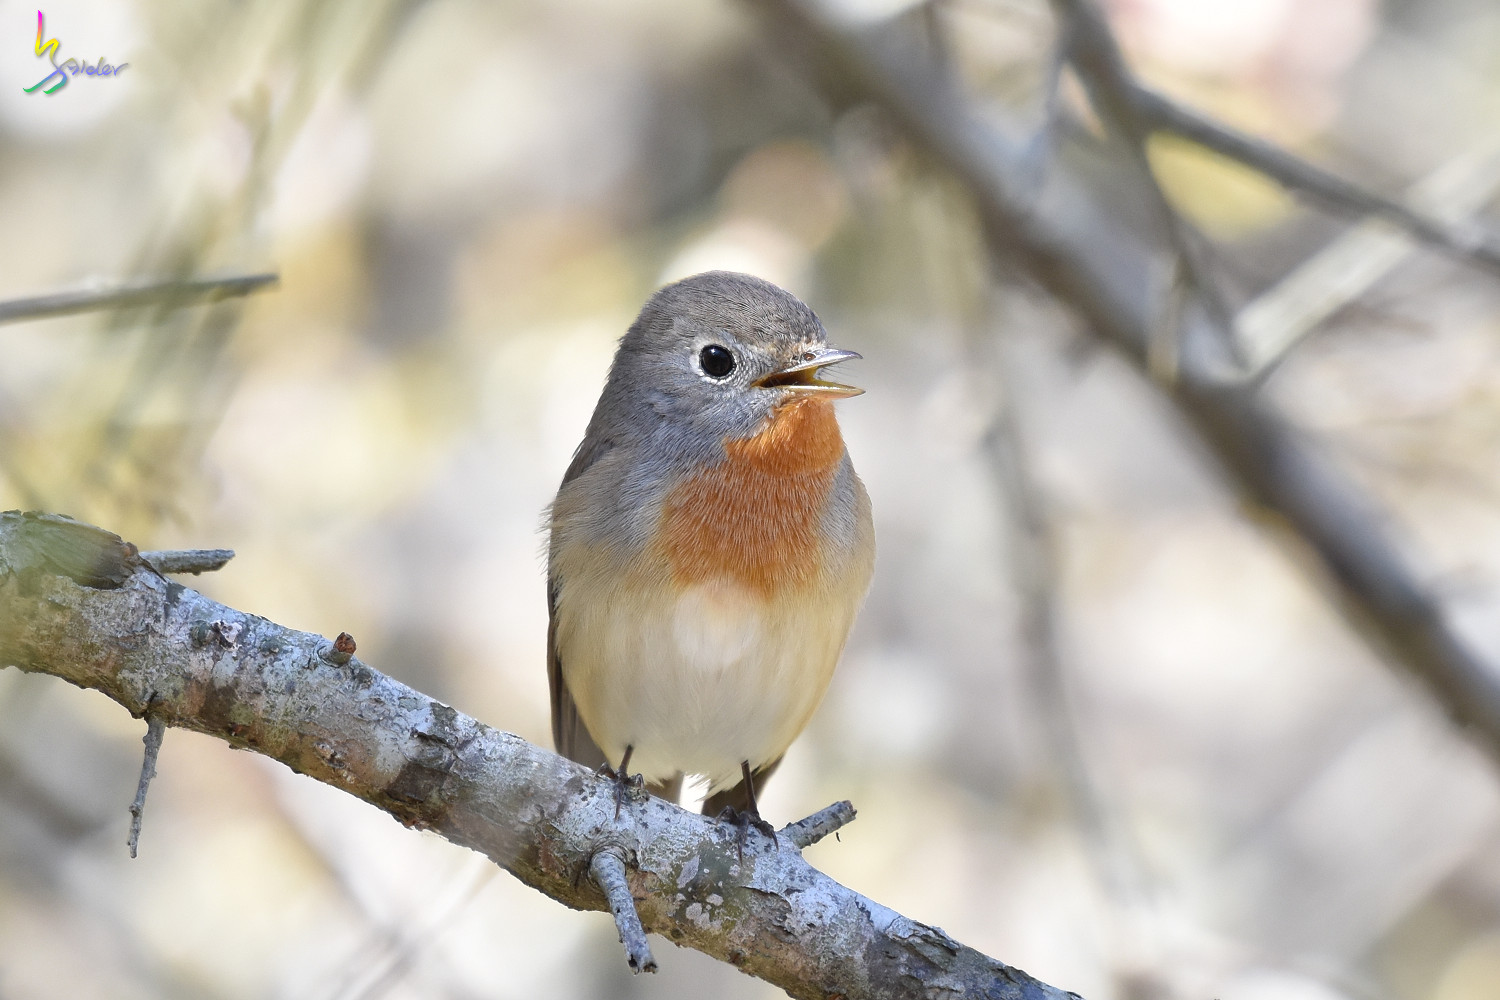 Red-breasted_Flycatcher_6472